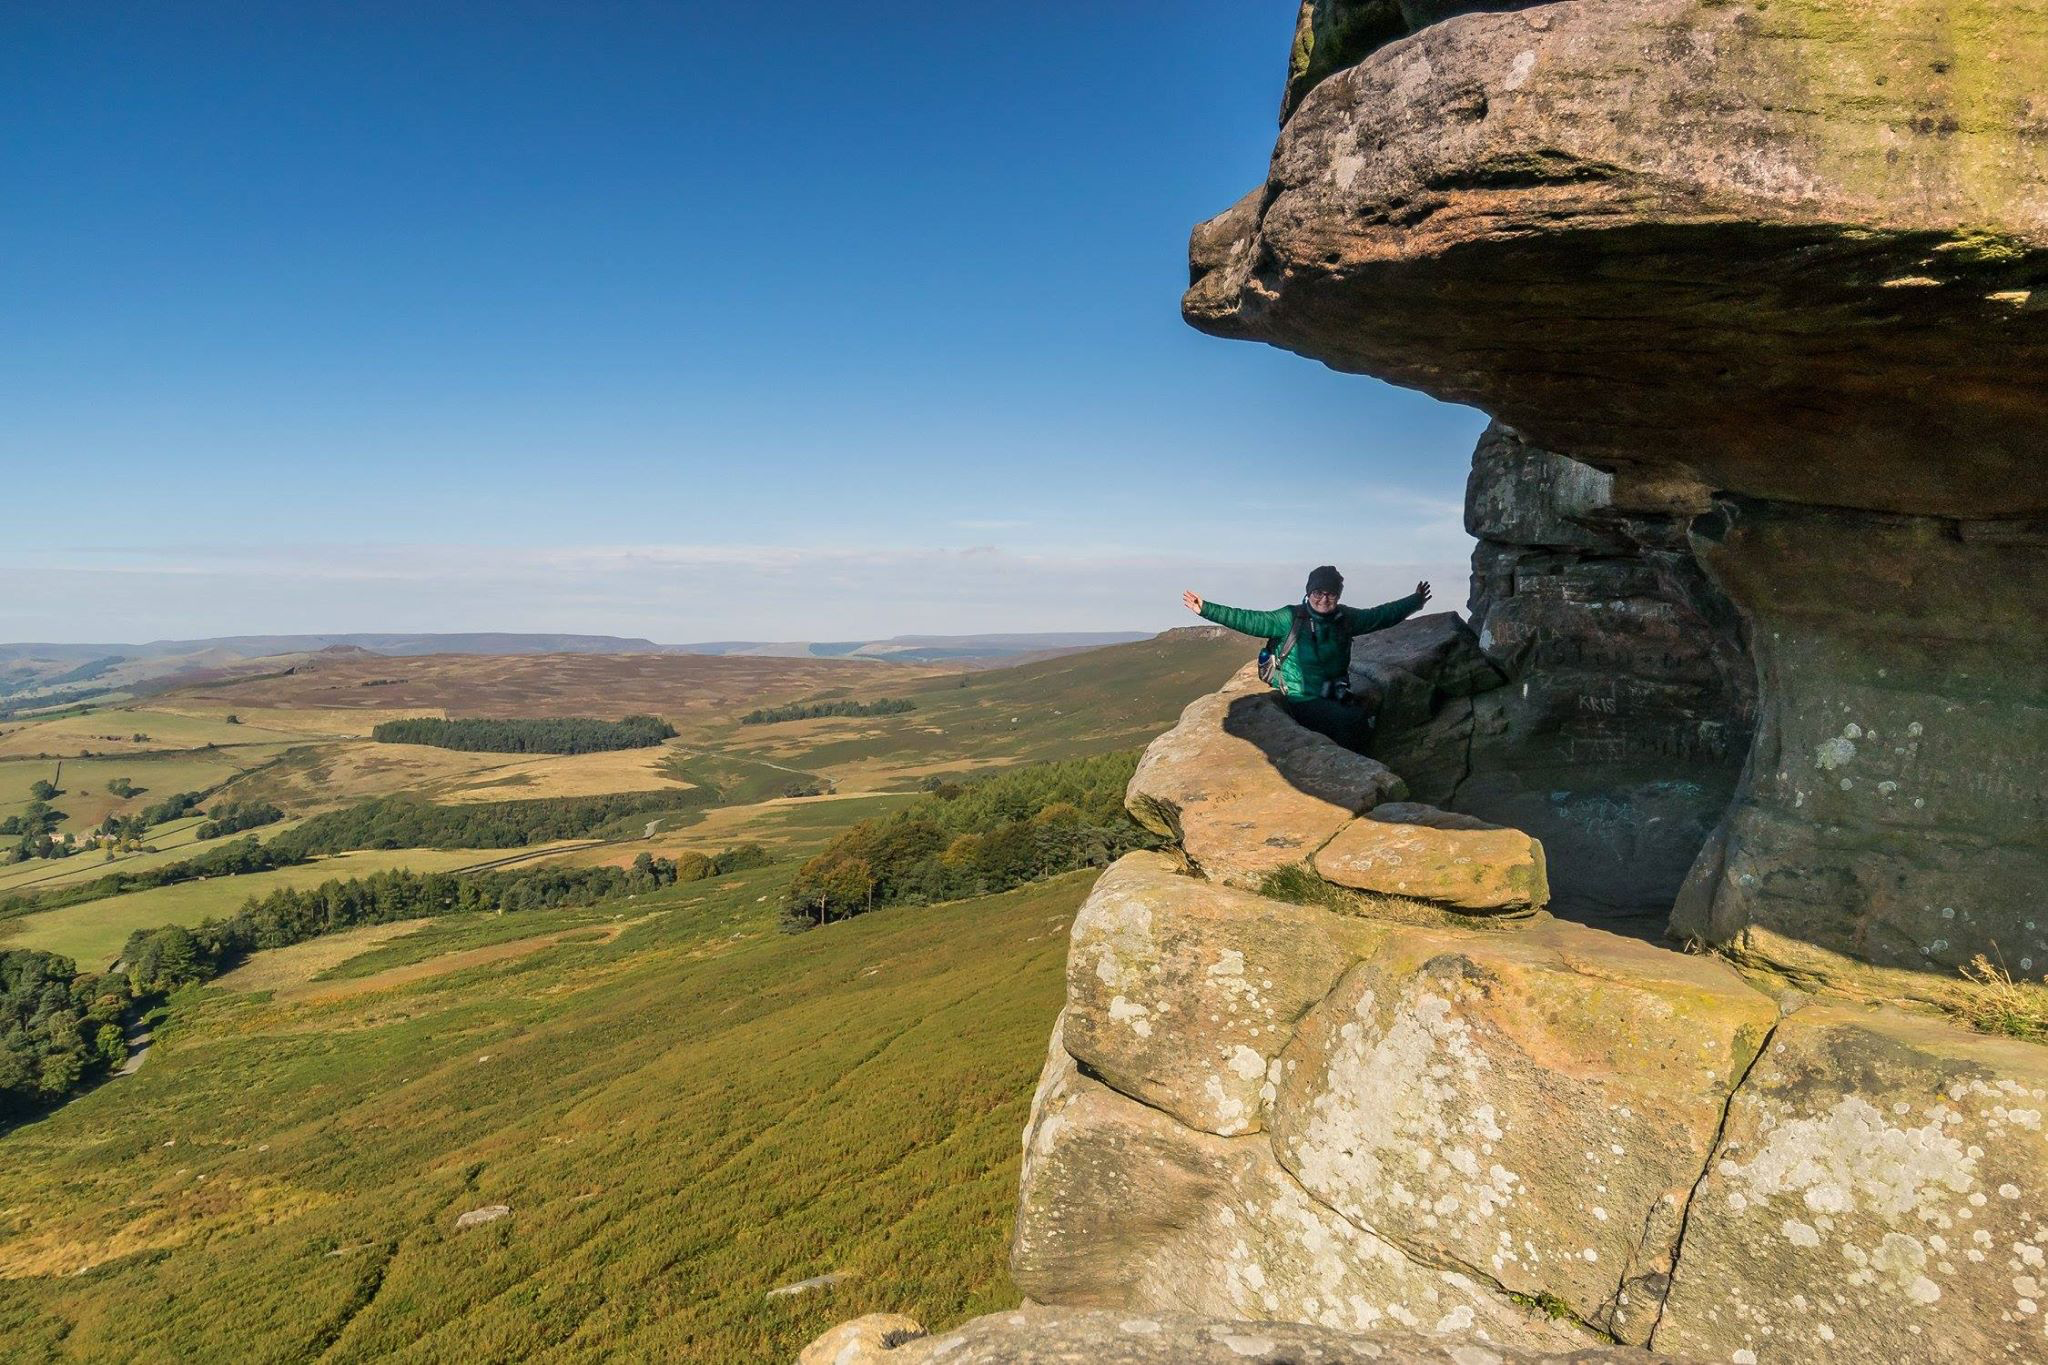 Robins Hood's Cave in Stanage Edge in the Peak District